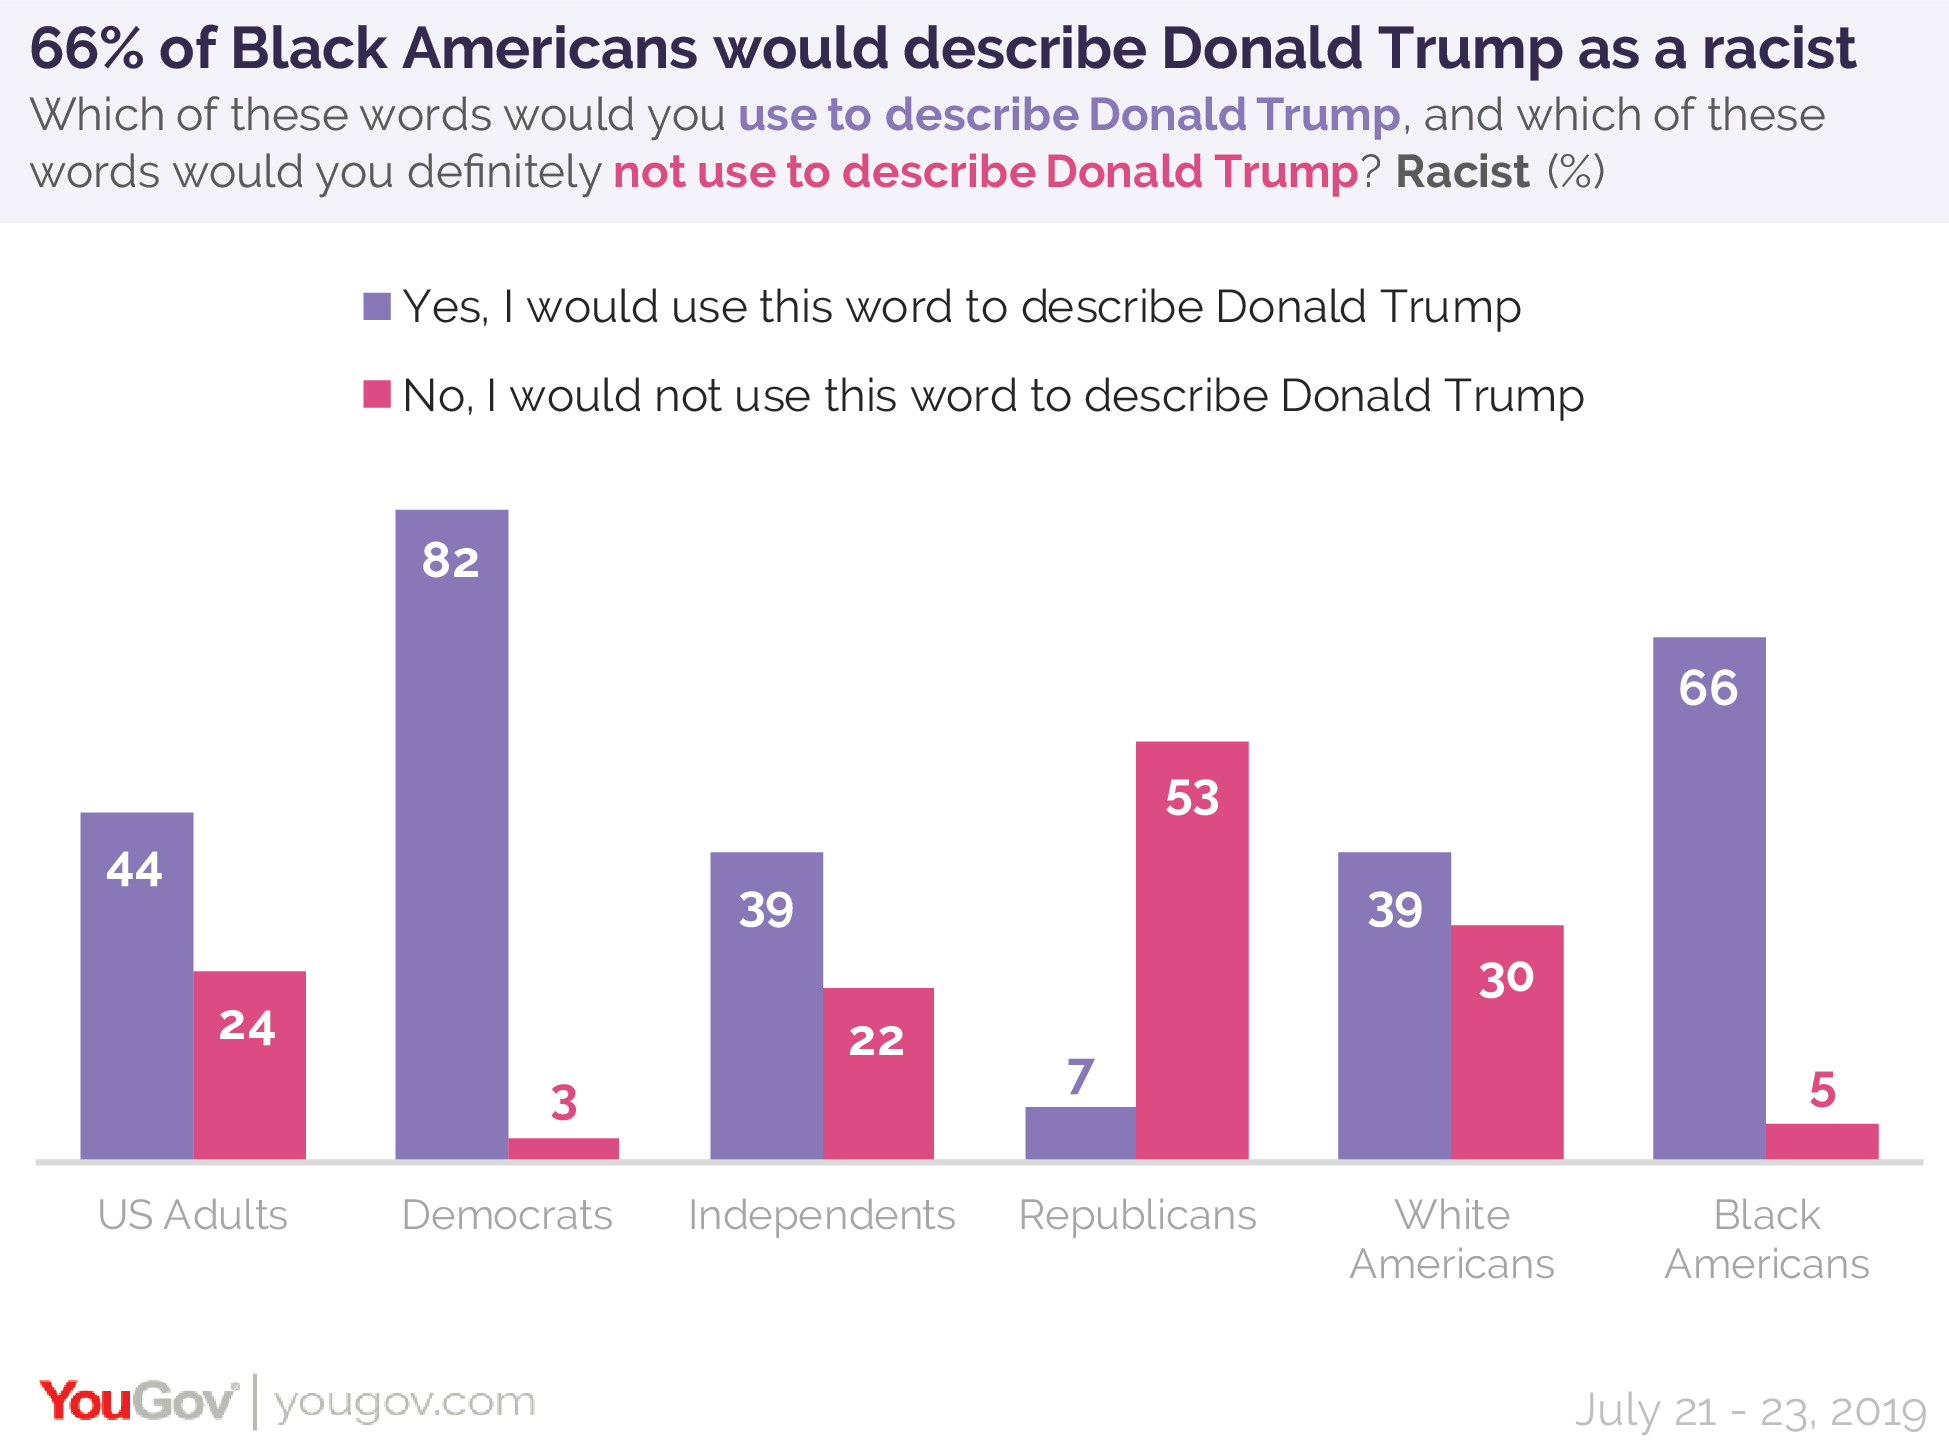 66% of Black Americans would describe President Donald Trump as a racist